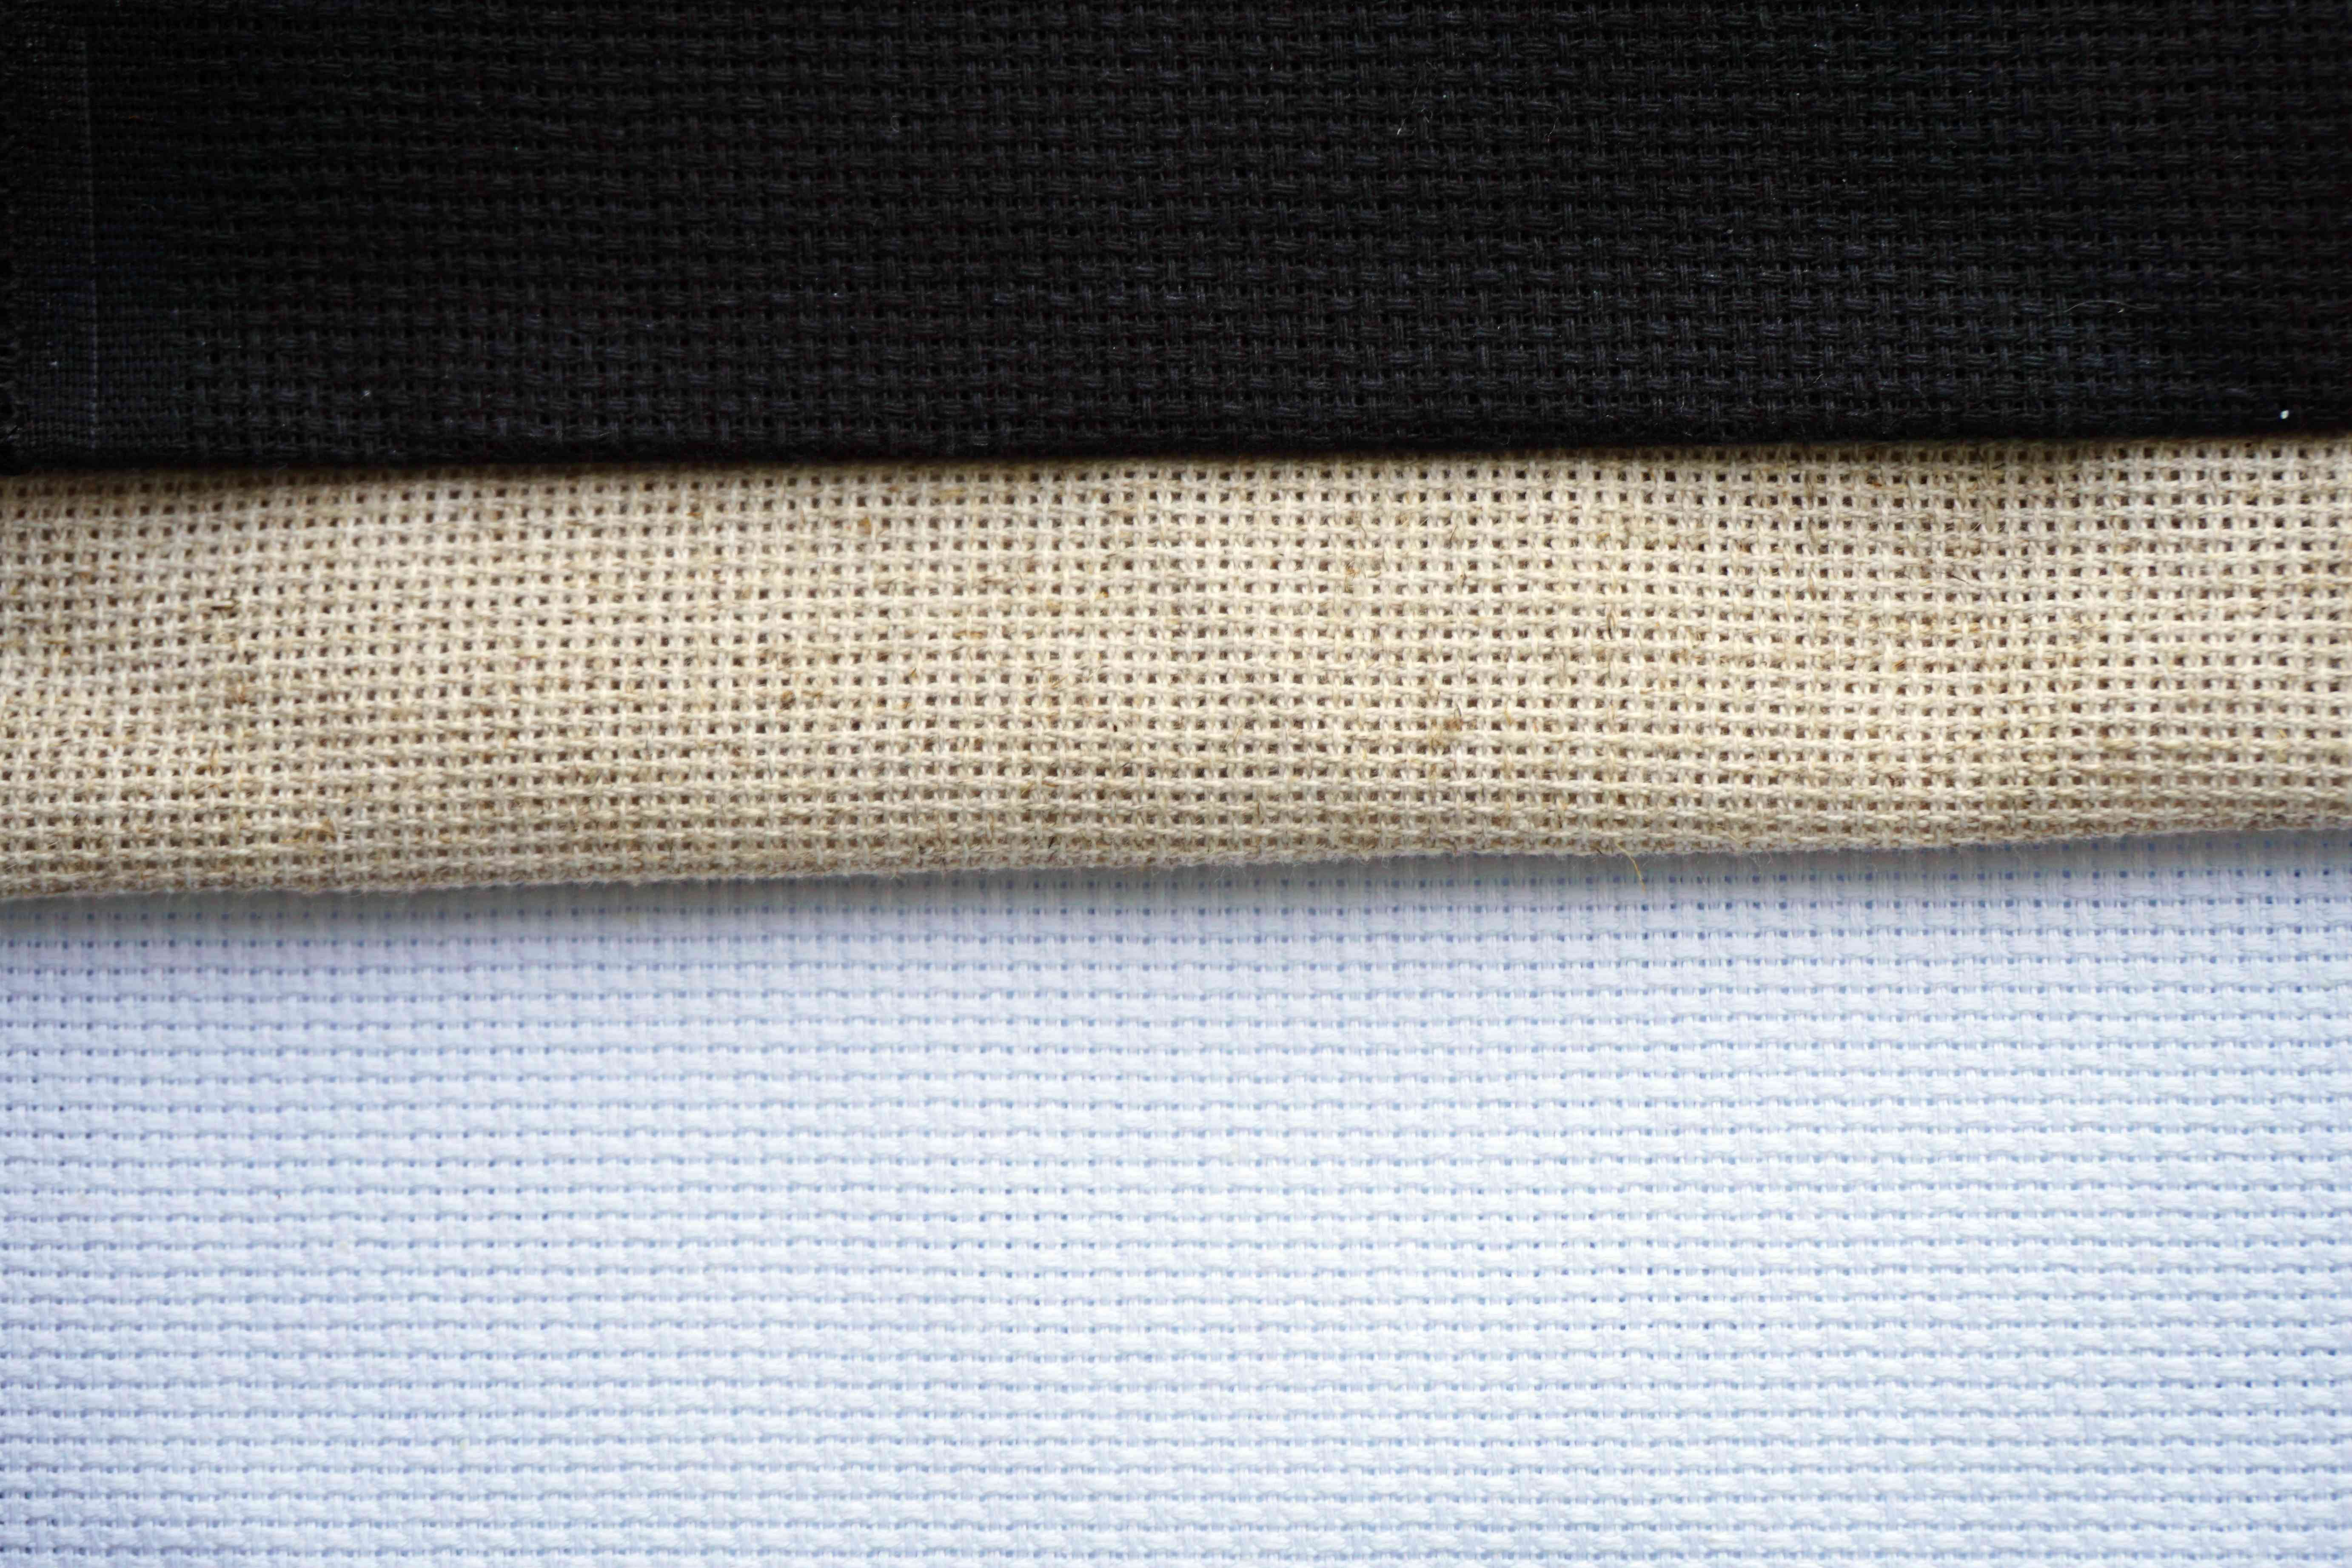 Background for cross stitch with multicolored yarn